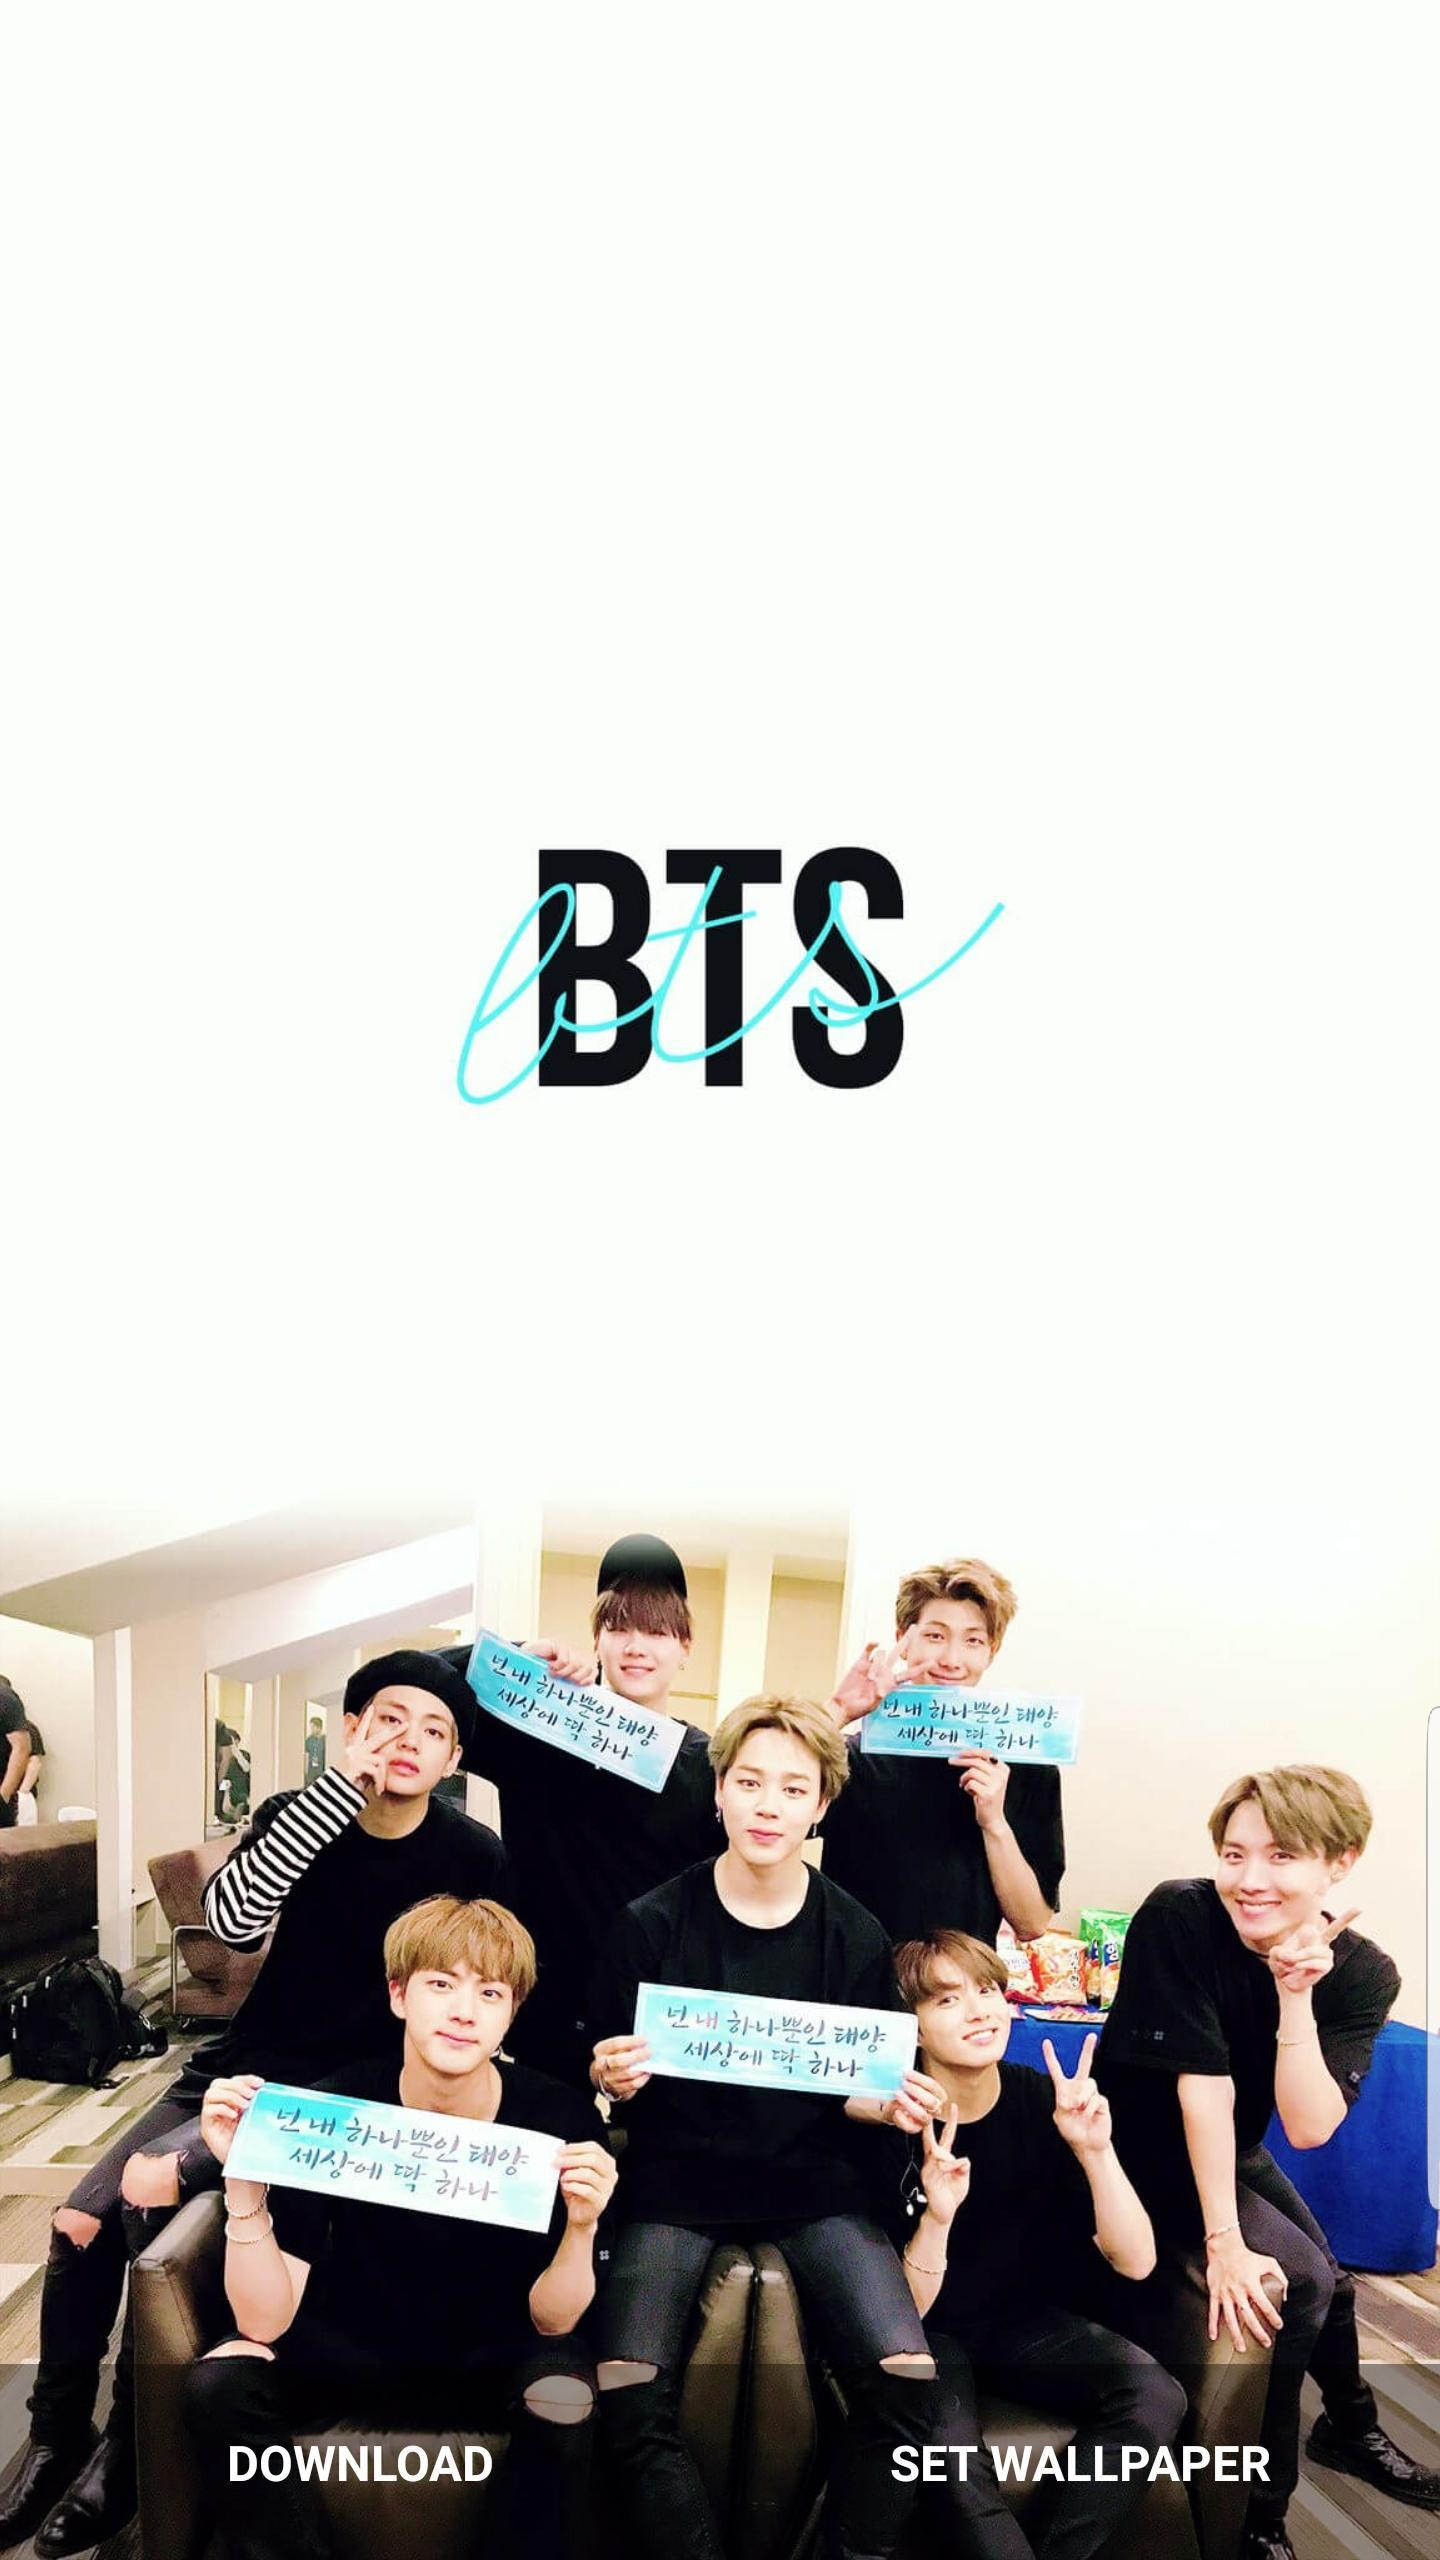 BTS Wallpapers HD for Android - APK Download